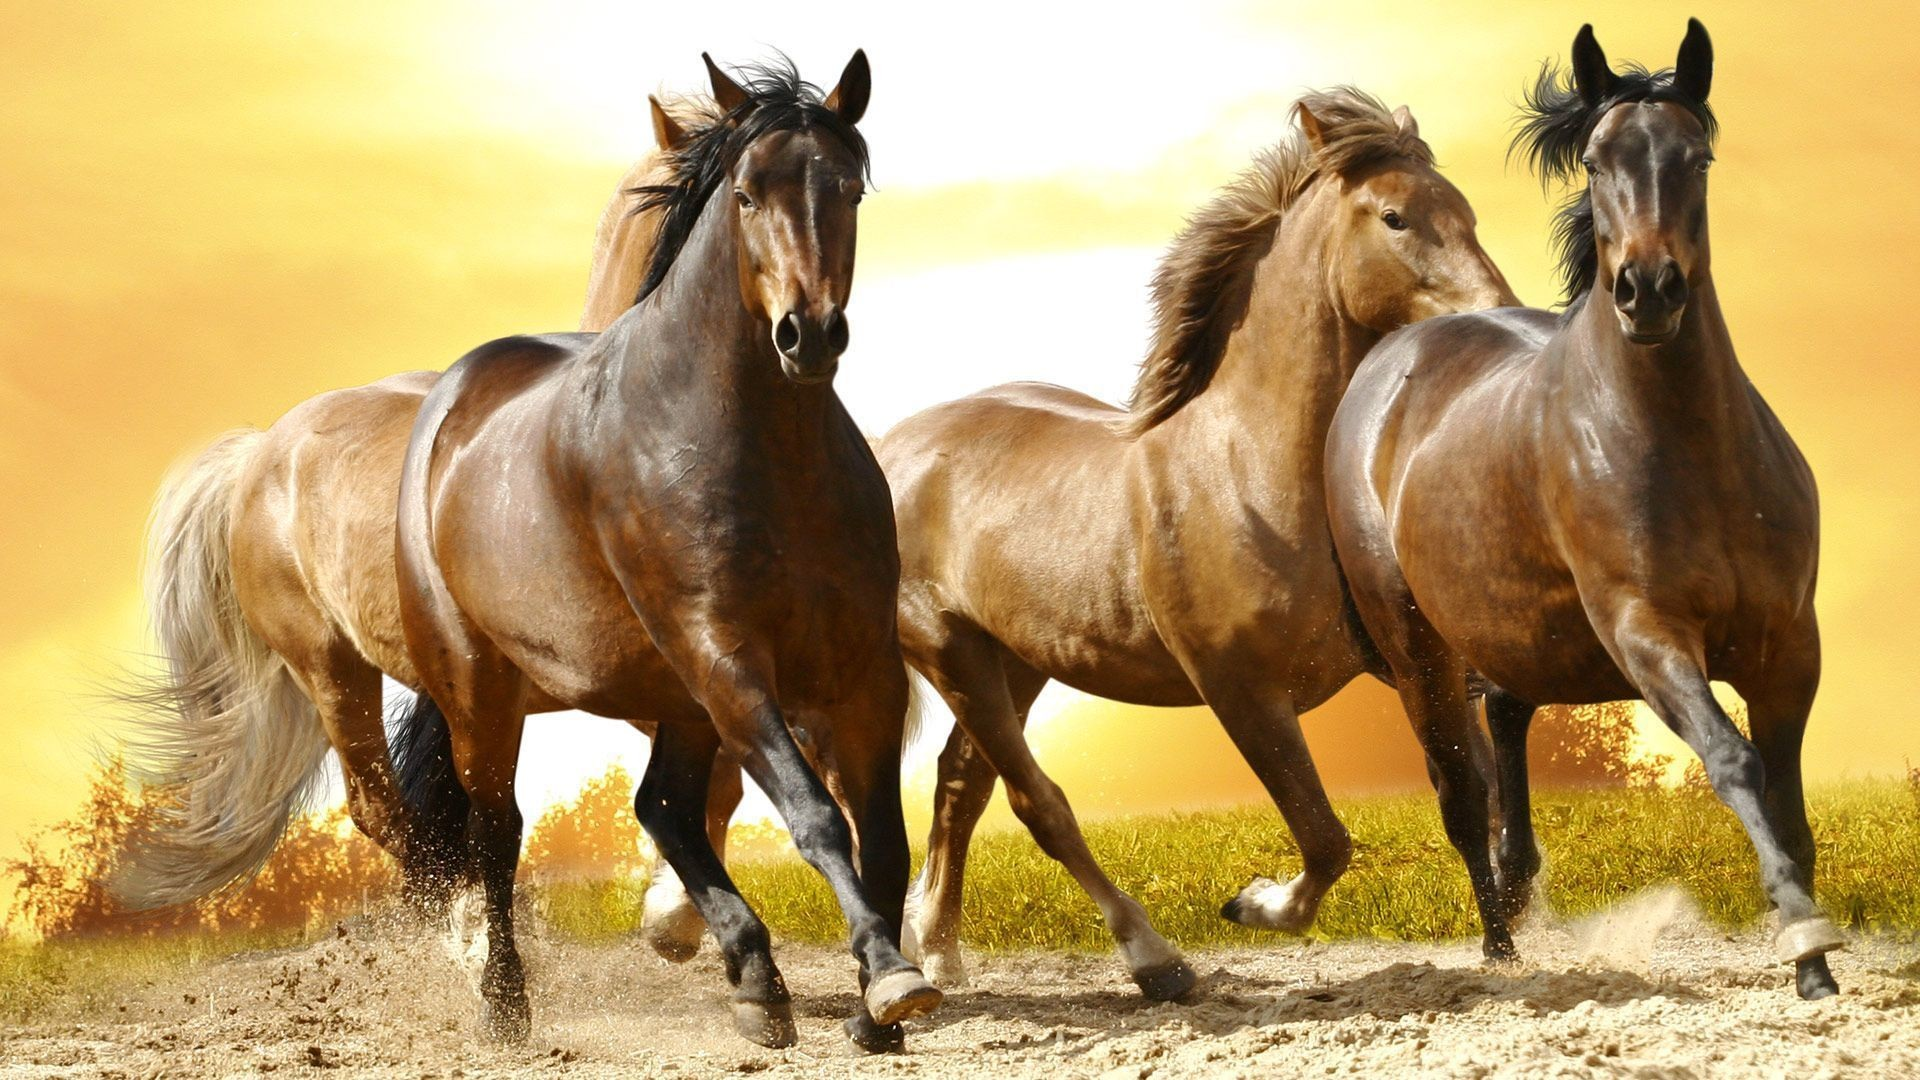 Res: 1920x1080, Wild-Horse-Wallpapers-Gallery-(74-Plus)-PIC-WPW406311